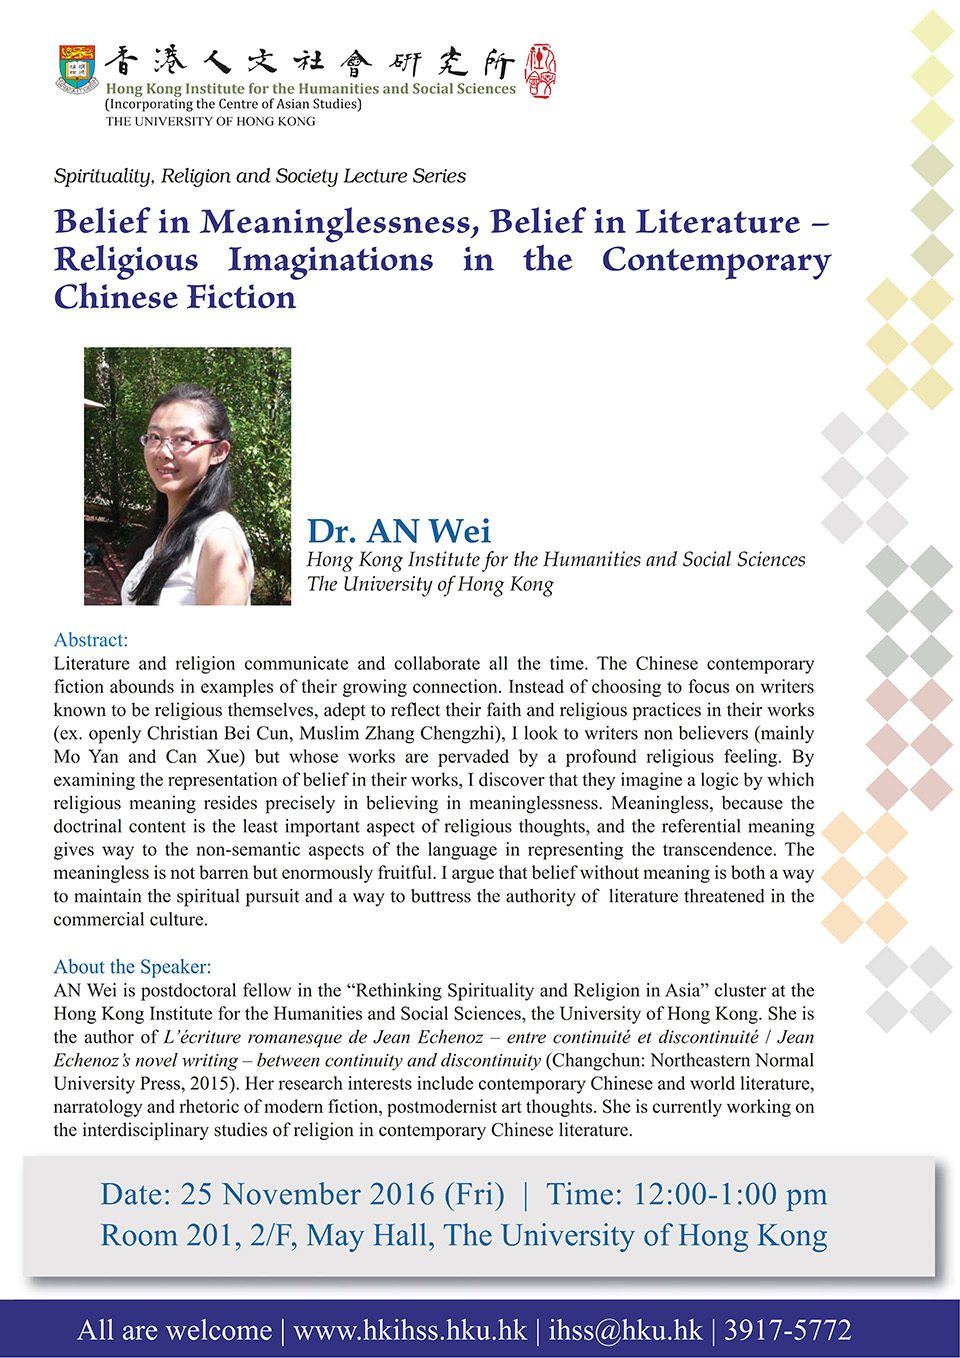 "Spirituality, Religion and Society Lecture Series ""Belief in Meaninglessness, Belief in Literature – Religious Imaginations in the Contemporary Chinese Fiction"" by Dr. Wei An (November 25, 2016)"